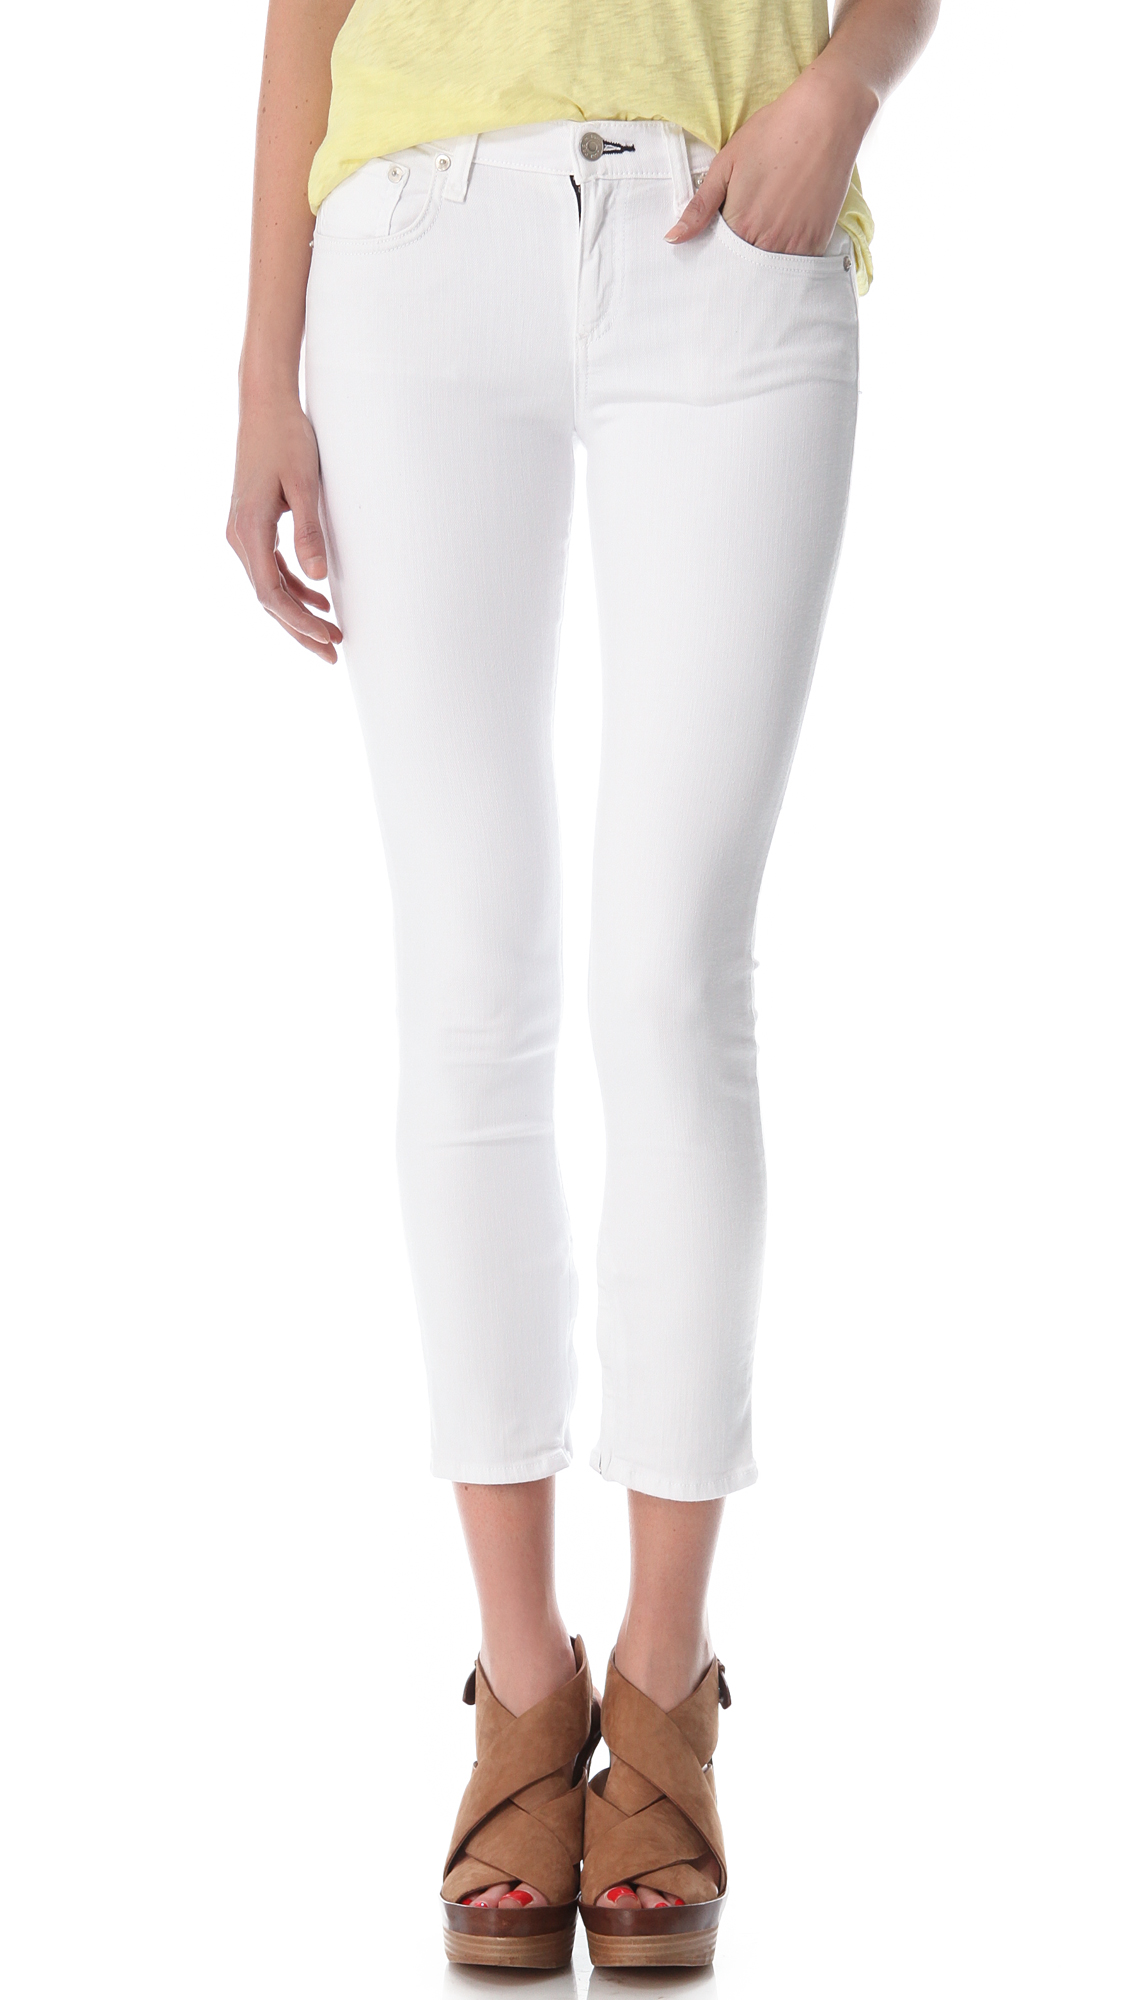 Lyst - Rag   Bone Zipper Capri Skinny Jeans in White fefa8f1cd3